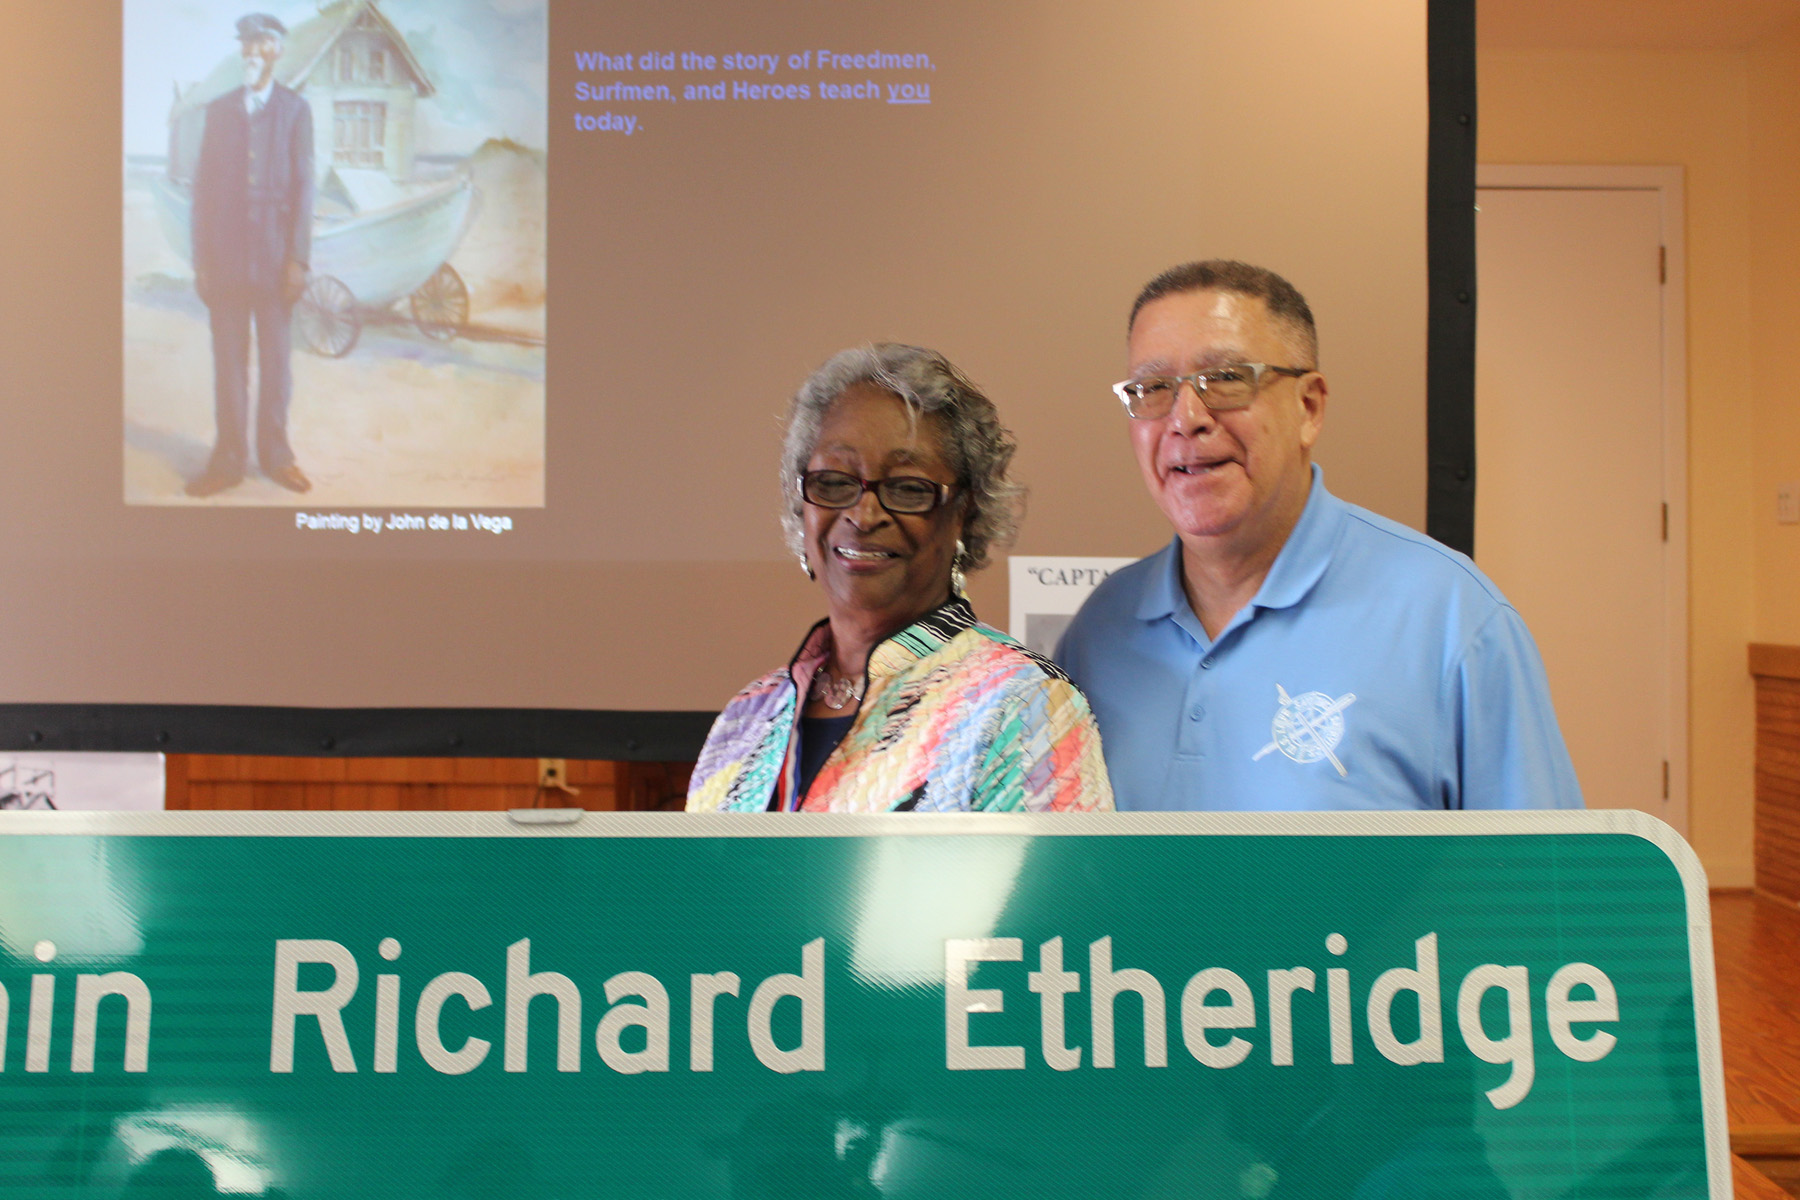 Etheridge Bridge Dedication (2-20-18) 22